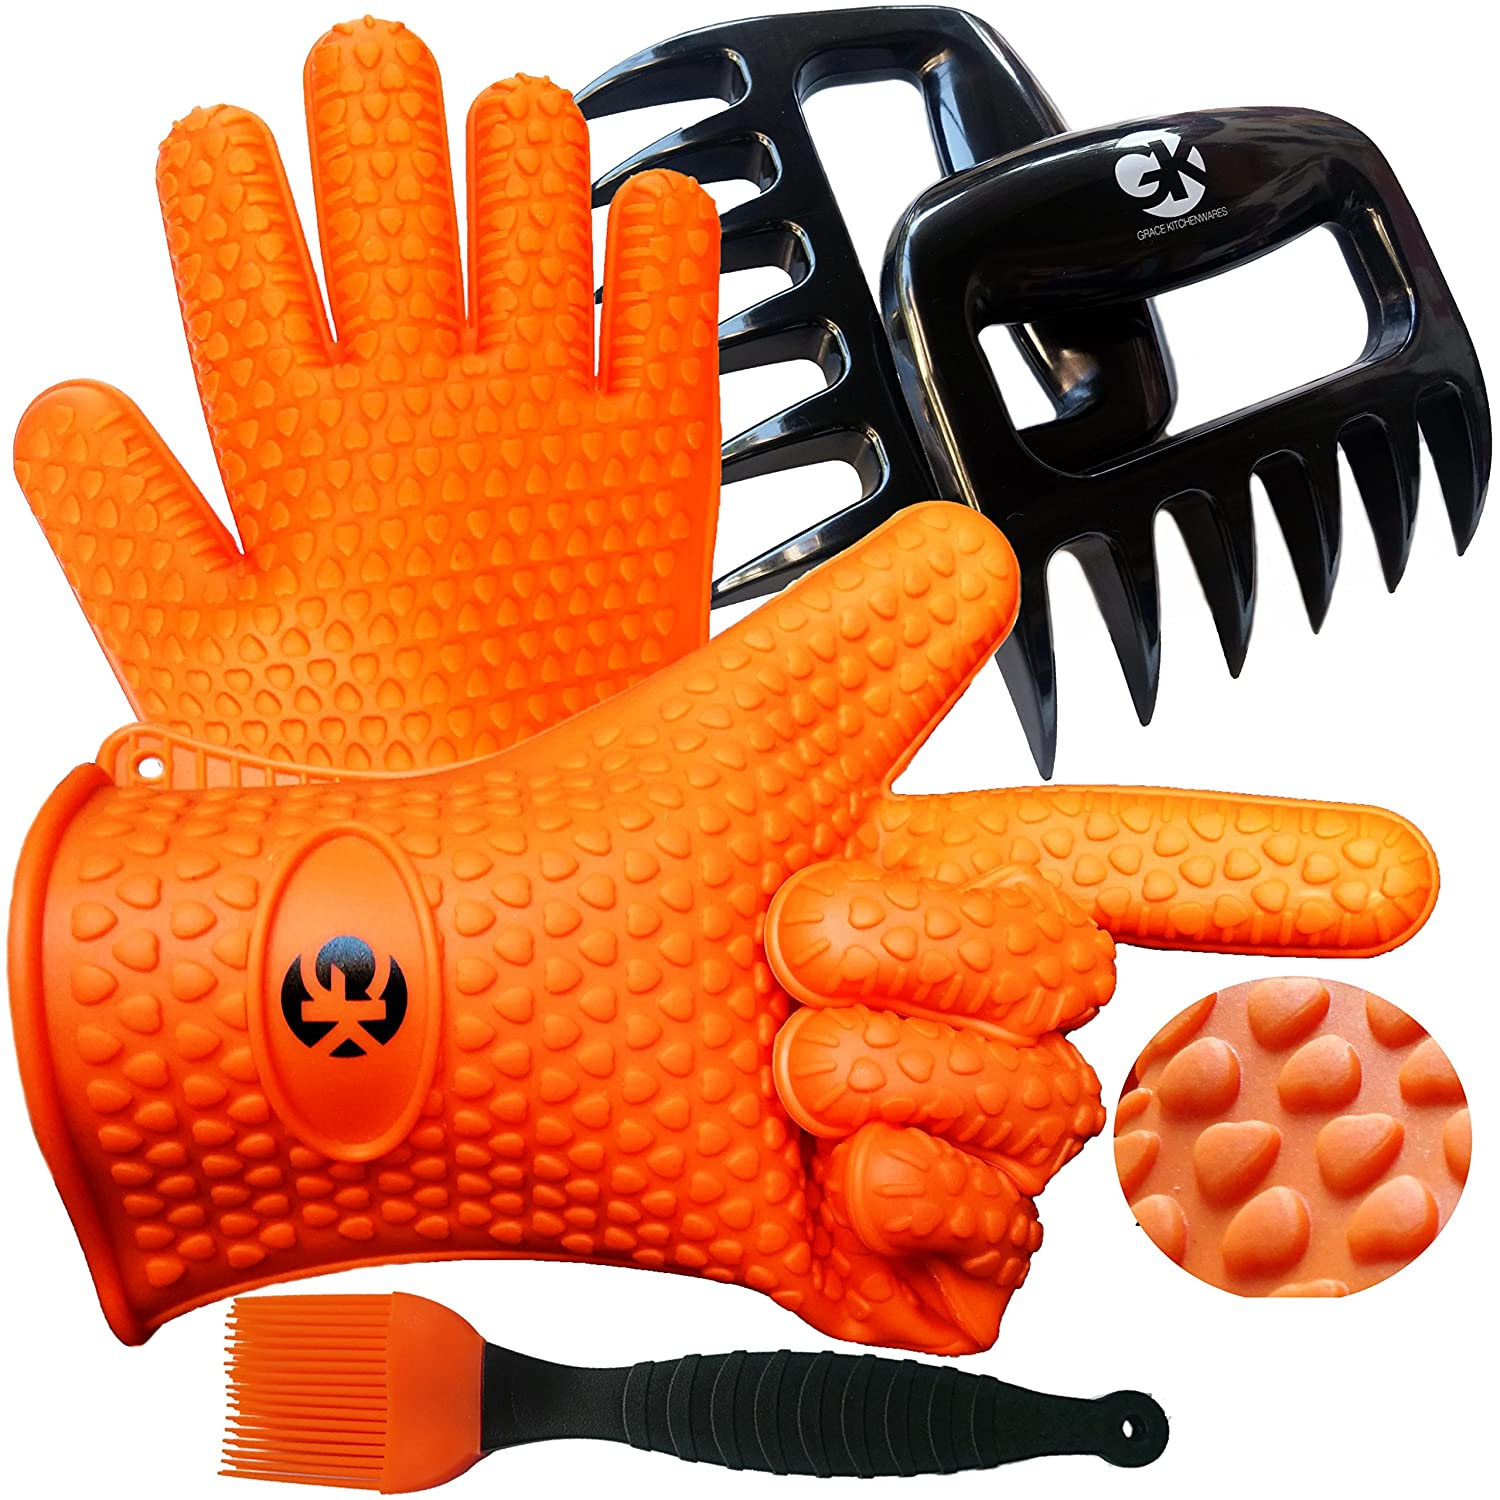 3 x No.1 Set: The No.1 Silicone BBQ /Cooking Gloves Plus The No.1 Meat Shredder Plus No.1 Silicone Baster PLUS eBooks w/ 344 Recipes. Superior Value Premium Set. 100% $ Back (Plastic)